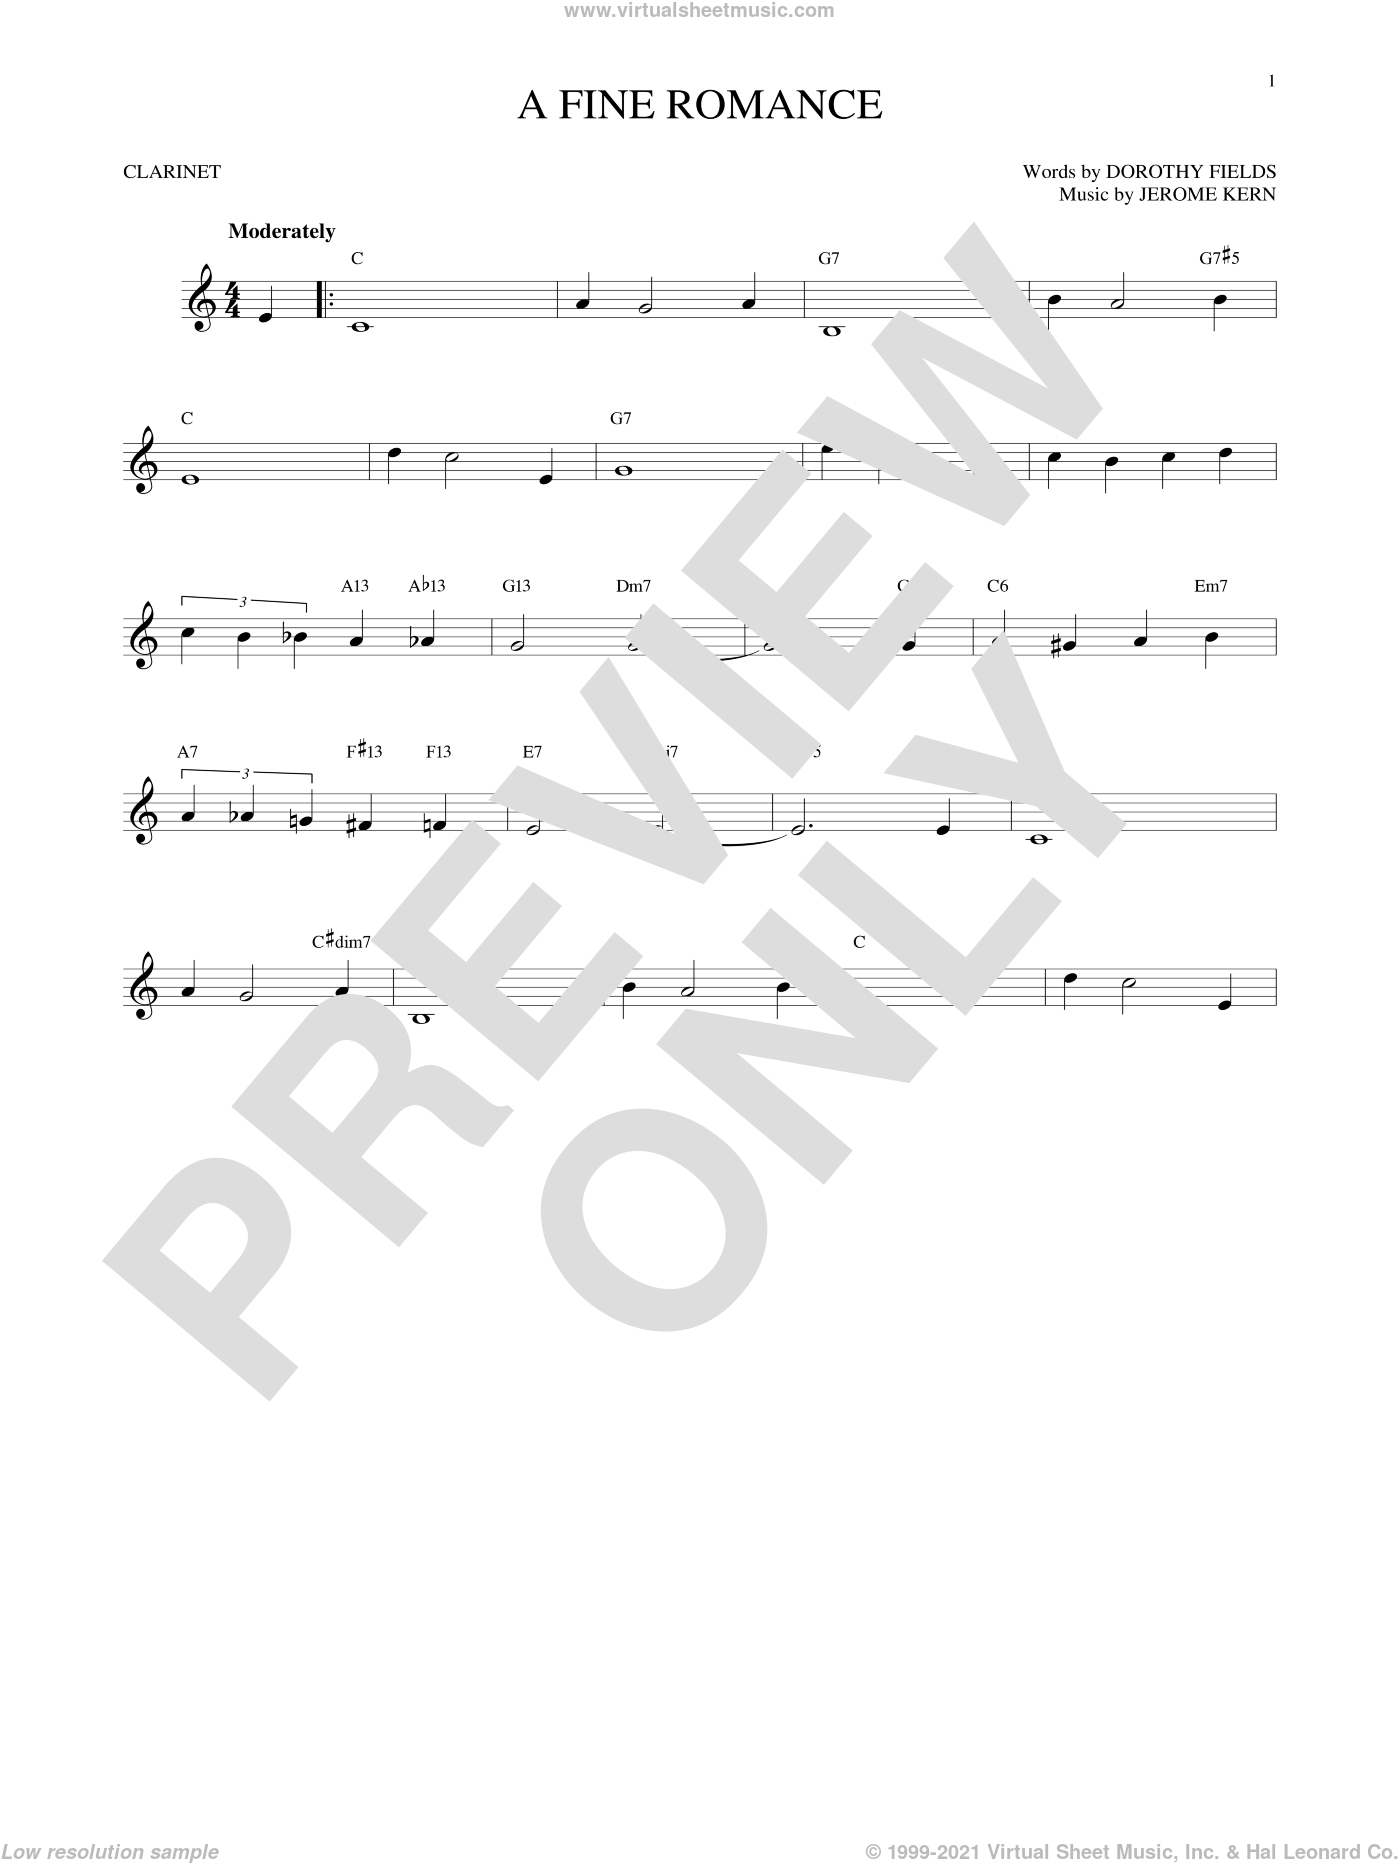 A Fine Romance sheet music for clarinet solo by Jerome Kern